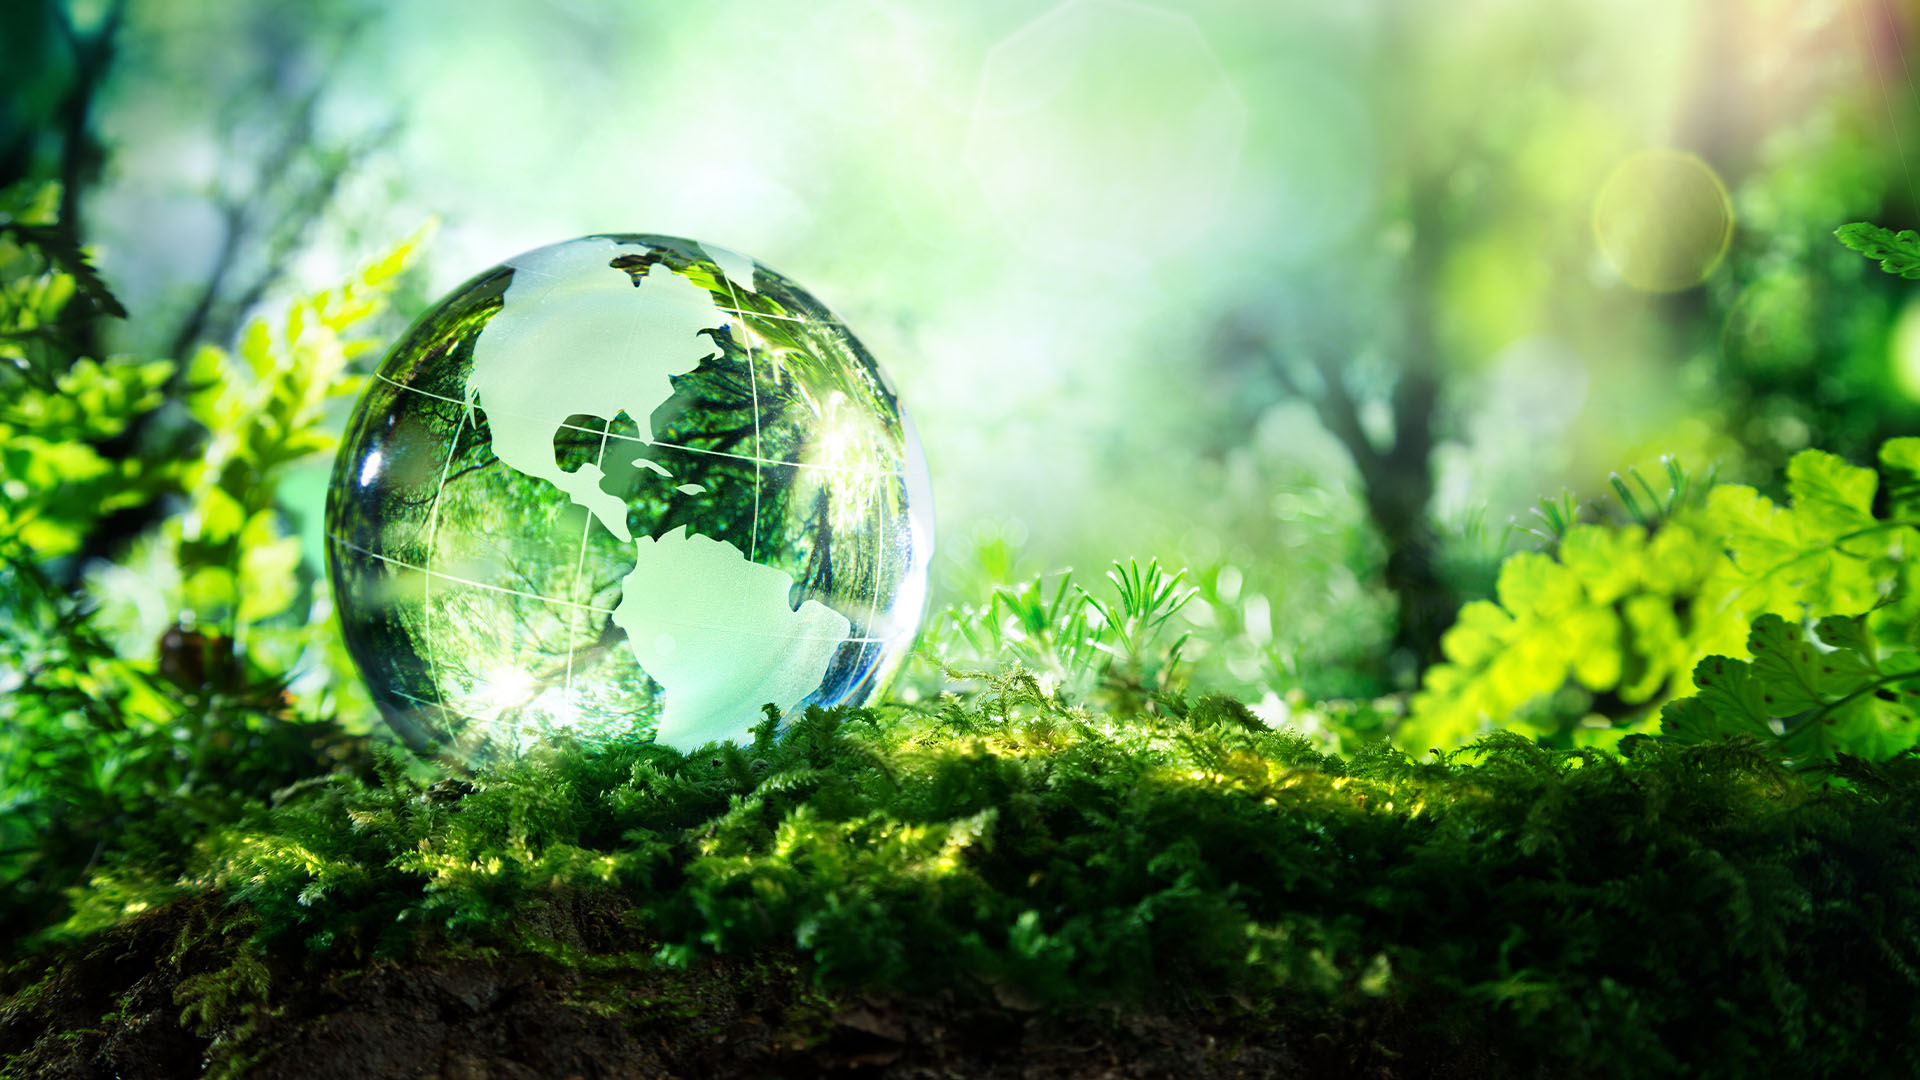 Environmental-law-trees-green-globe-earth-glass-green-grass-climate-change